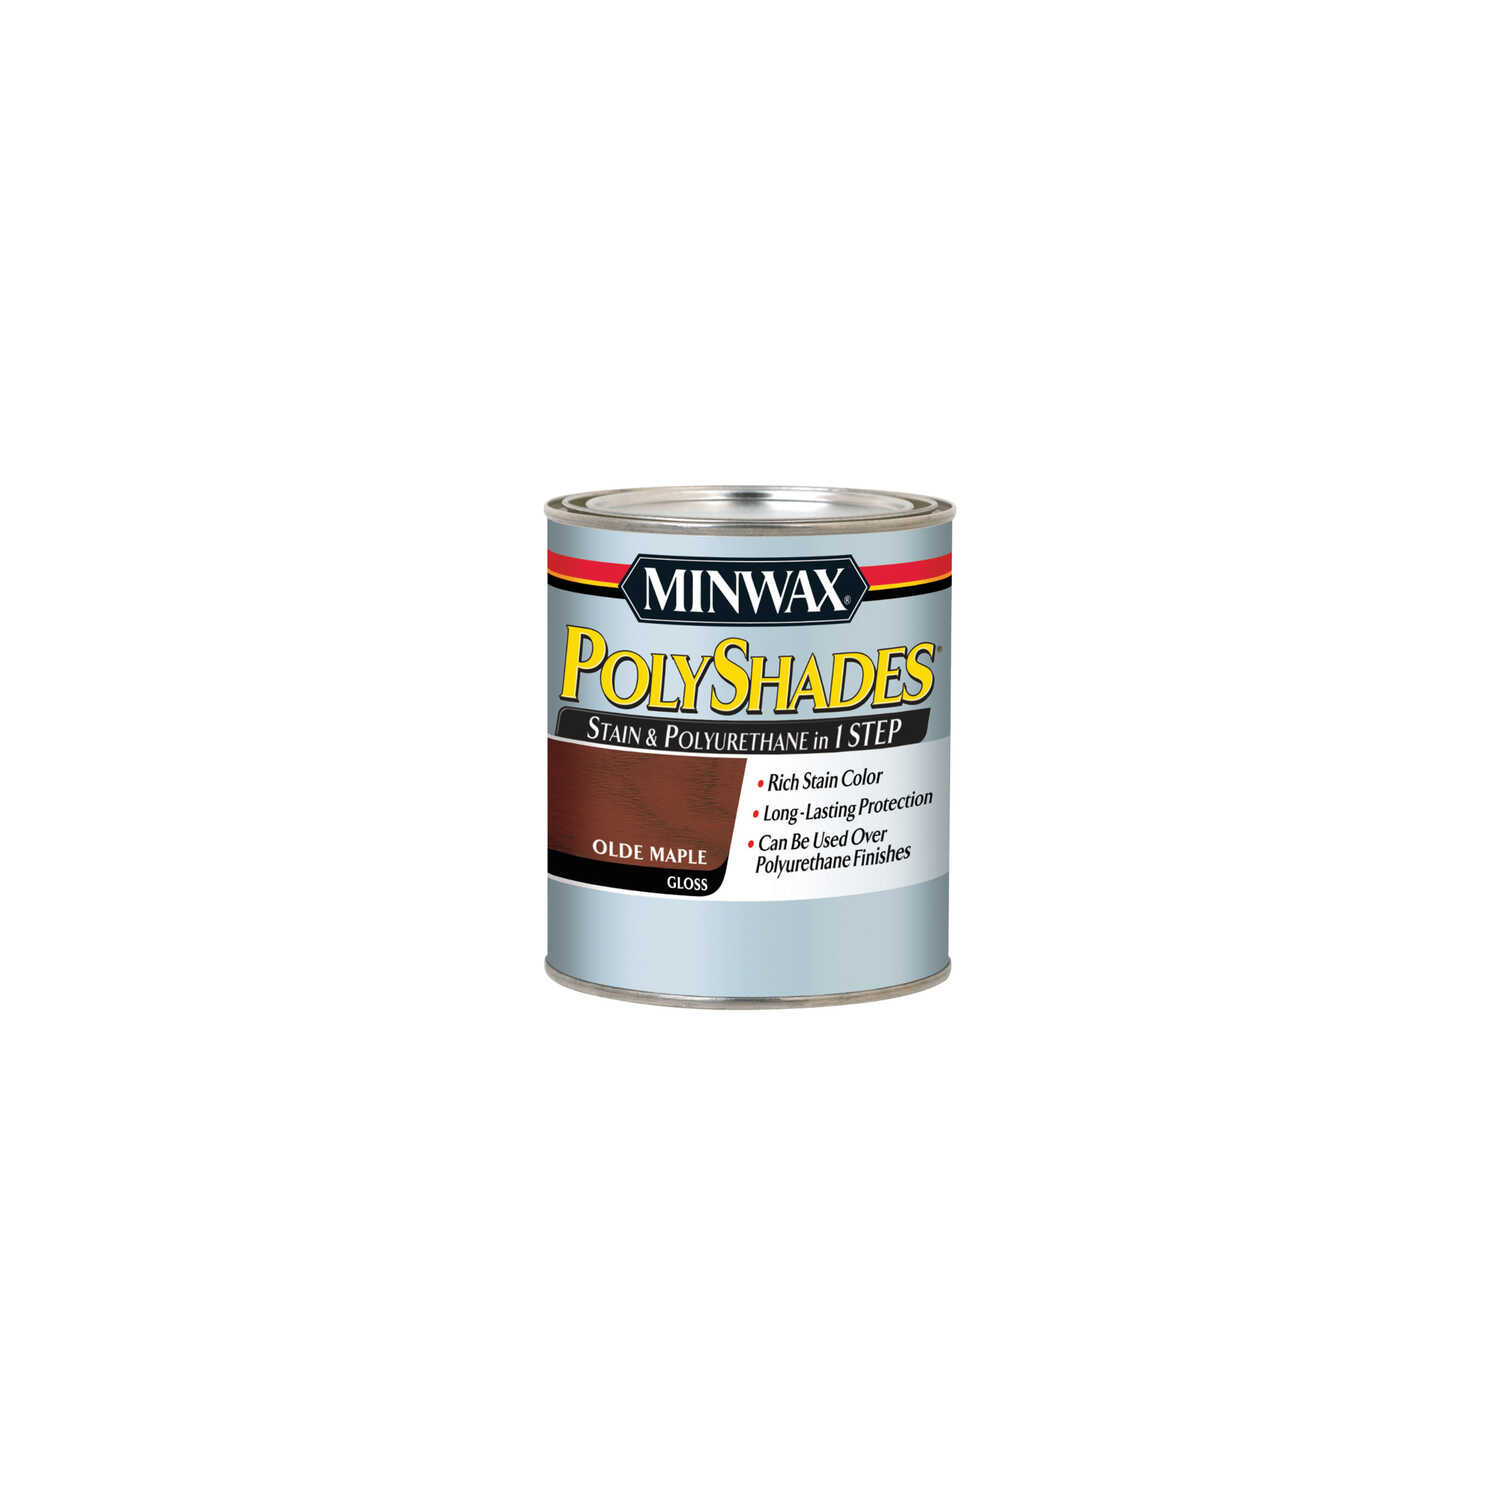 Minwax  PolyShades  Semi-Transparent  Gloss  Olde Maple  Oil-Based  Polyurethane  Stain  0.5 pt.